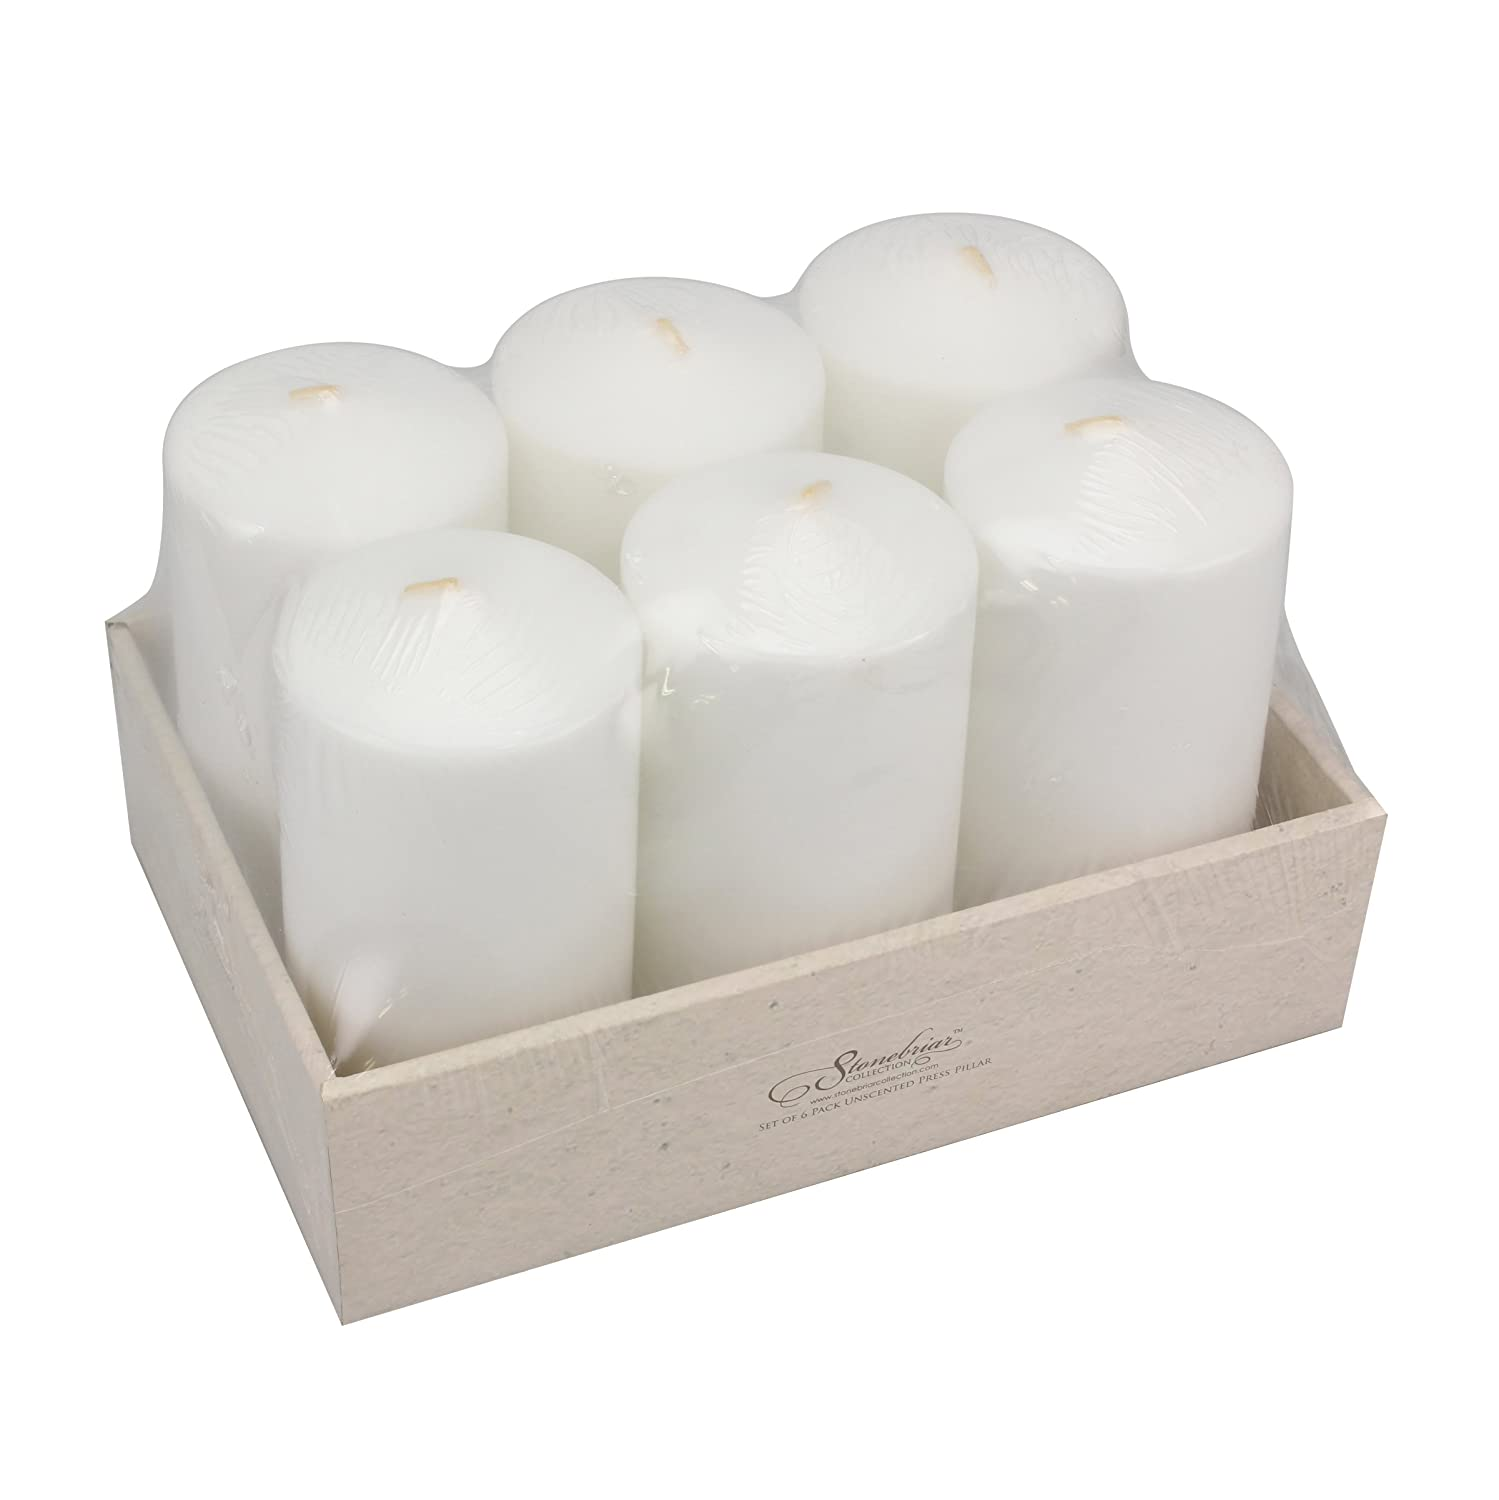 Stonebriar Tall 3 x 6 Inch Unscented White Pillar Candle Set, Candle Decor for Lanterns, Hurricanes, and Centerpieces, Set of 6 CKK Home Décor SB-SP-3209A